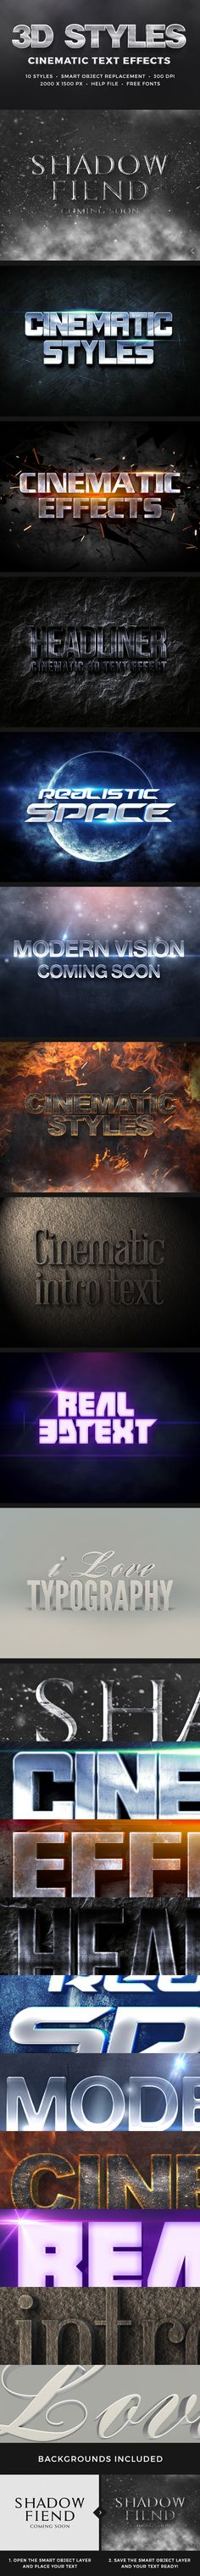 3D Cinematic Text Effects for Photoshop. Download here: http://graphicriver.net/item/3d-cinematic-text-effects-vol1/11031893?ref=ksioks